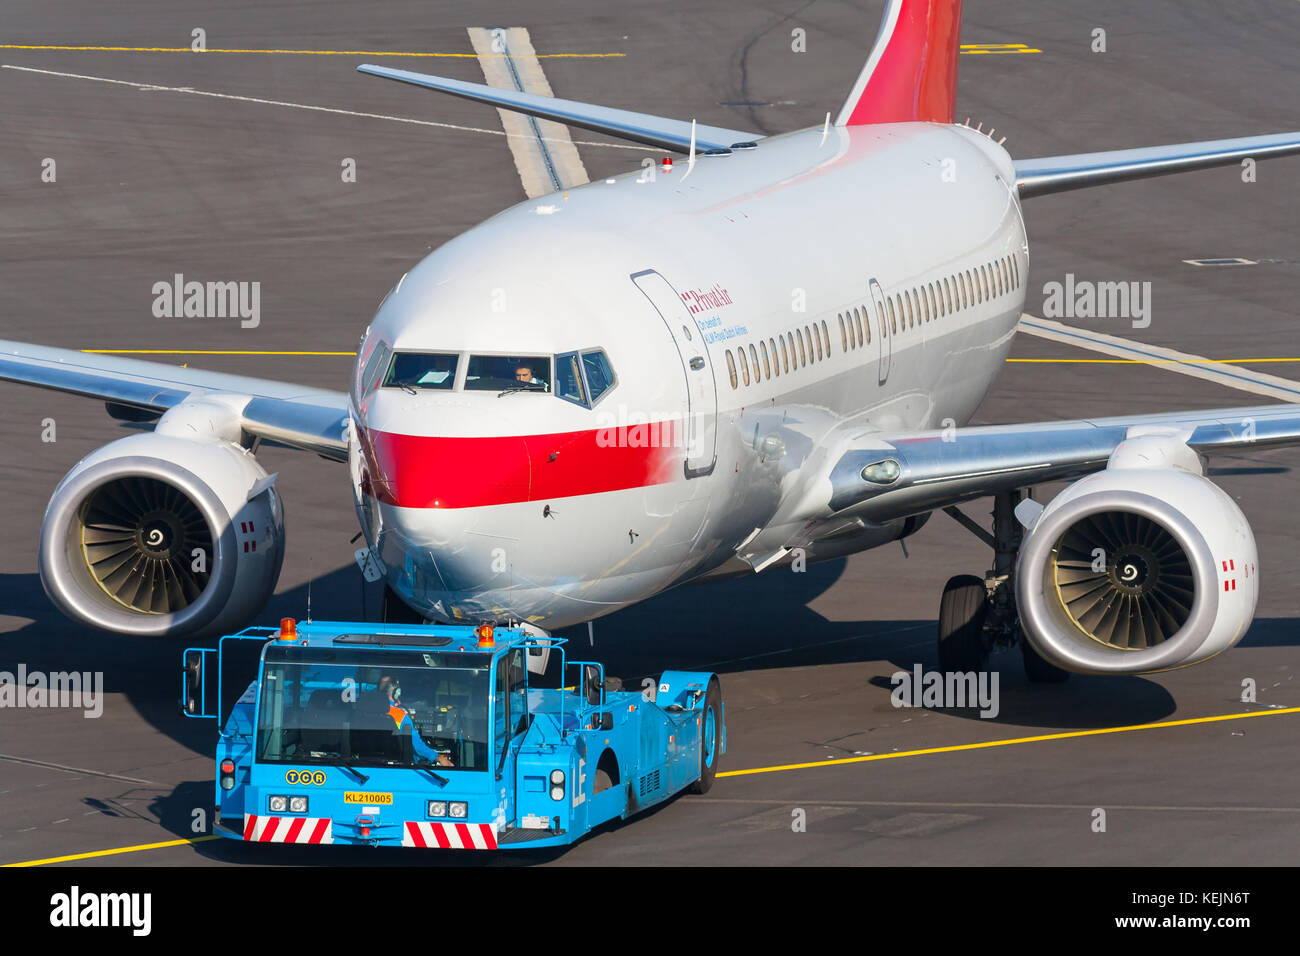 A Boeing 737 of Privatair being prepared for flight from Amsterdam's Schiphol Airport. - Stock Image